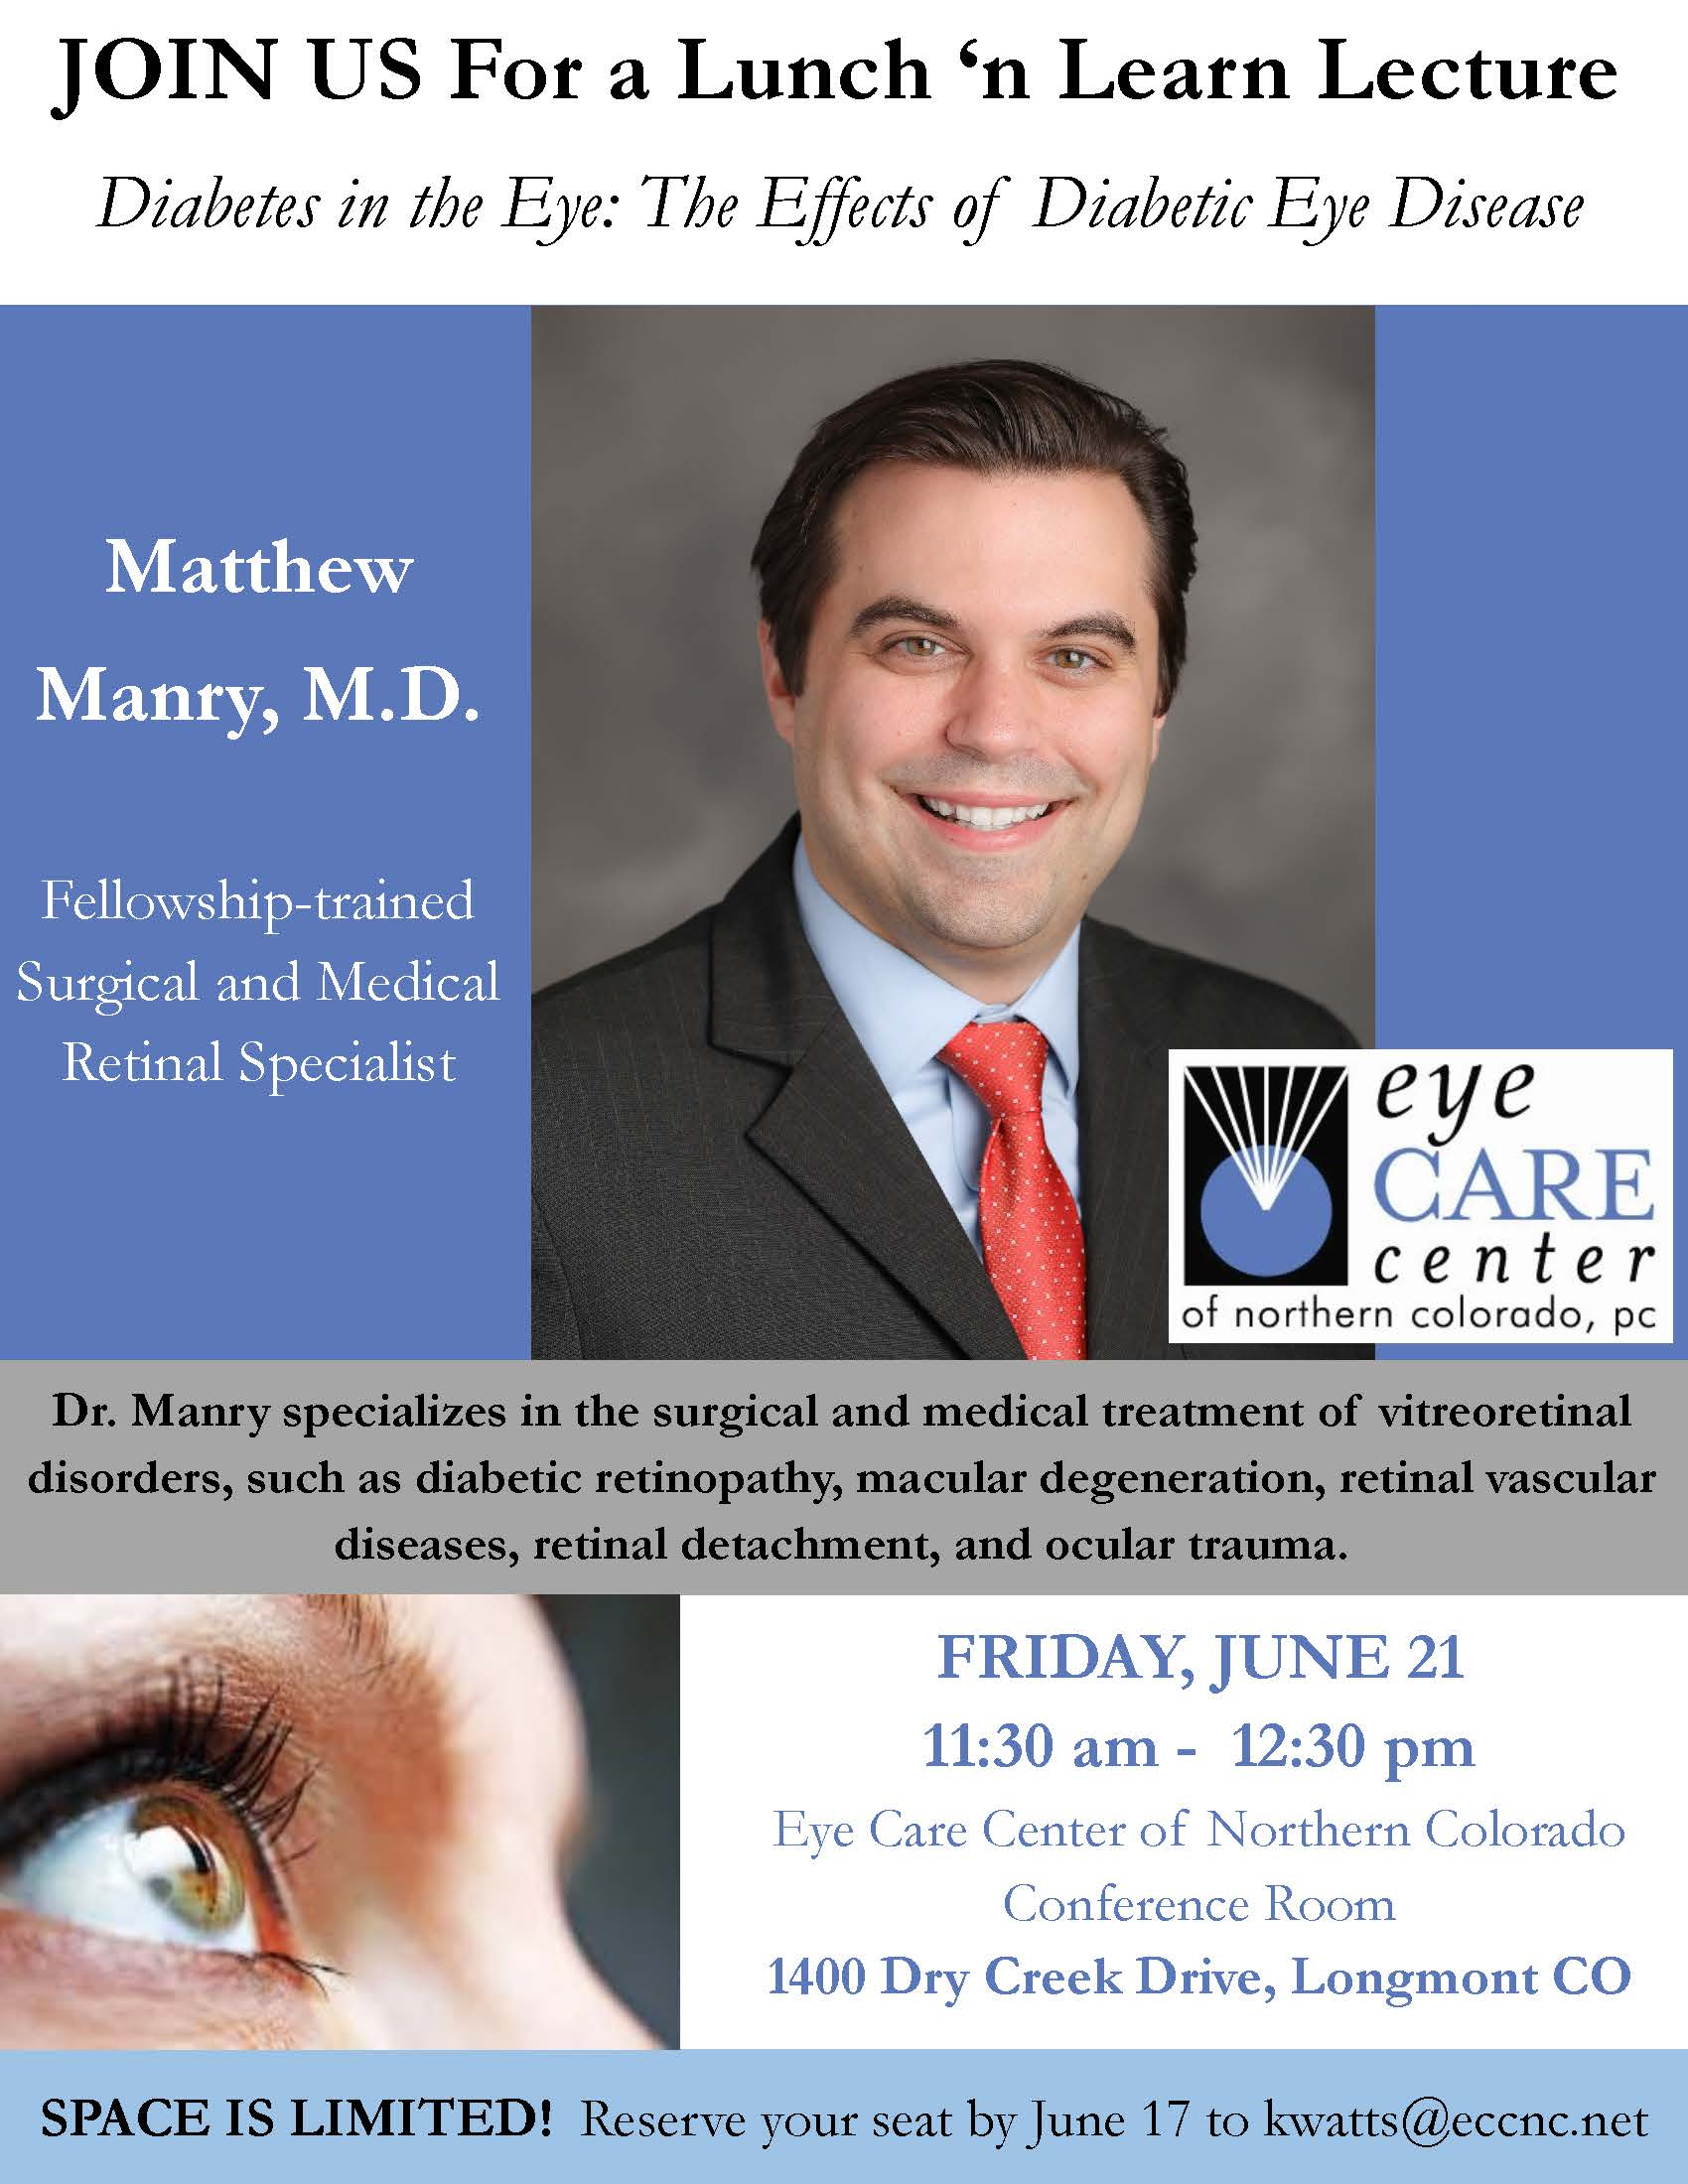 Boulder Eye Care & Surgery Center Doctors June 2019 Diabetes in the Eye - Disclaimer